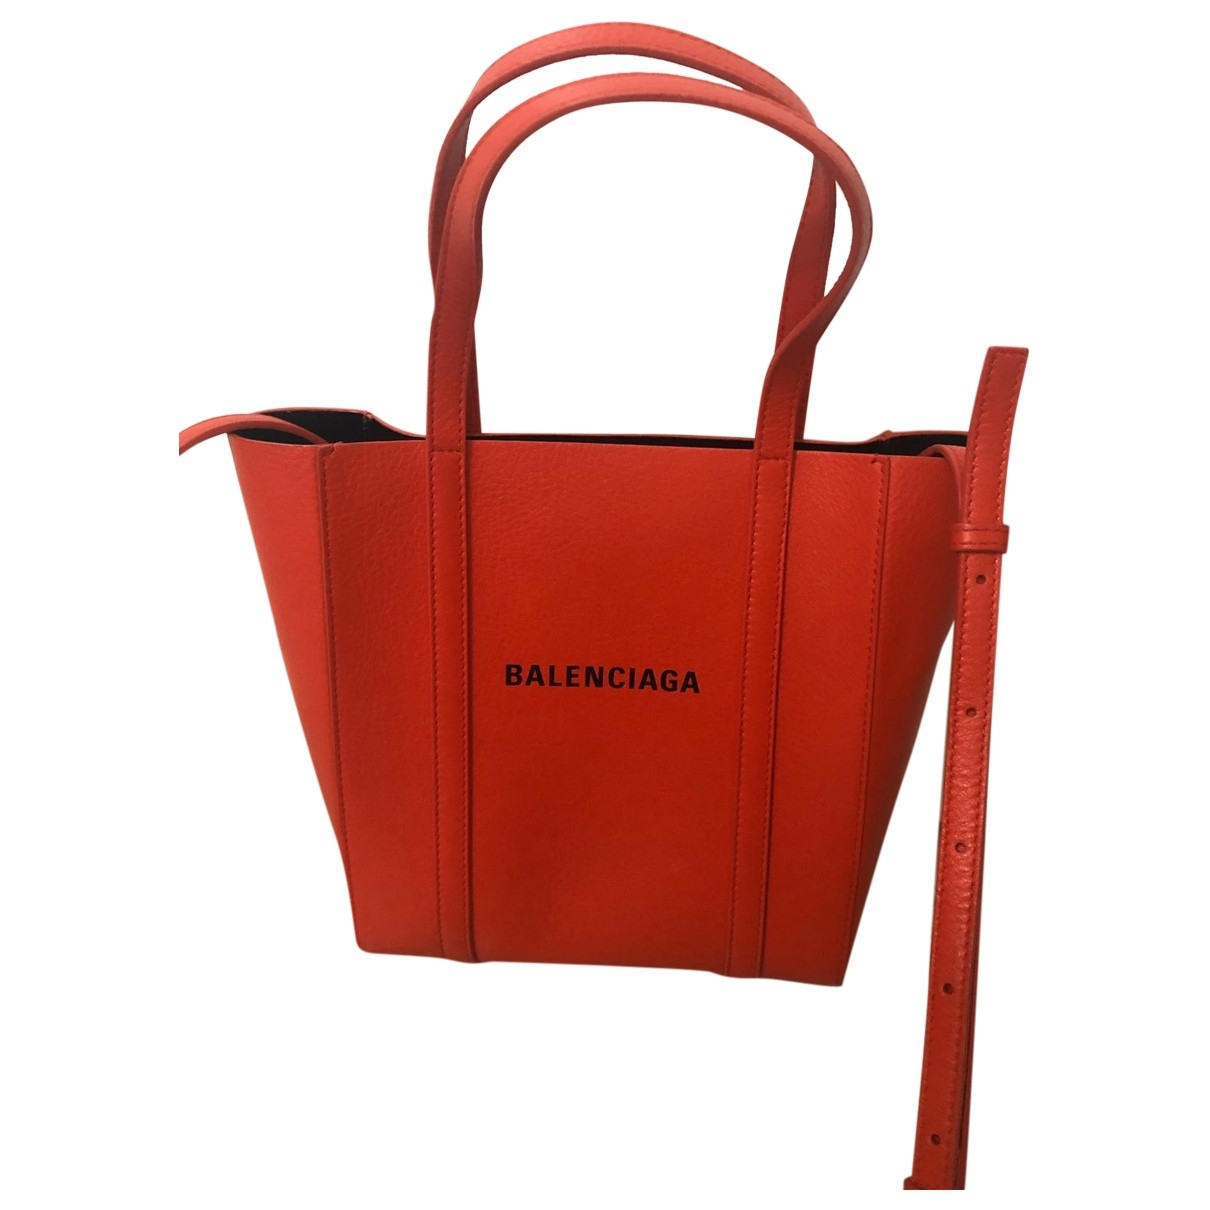 Balenciaga \N Orange Leather handbag for Women \N